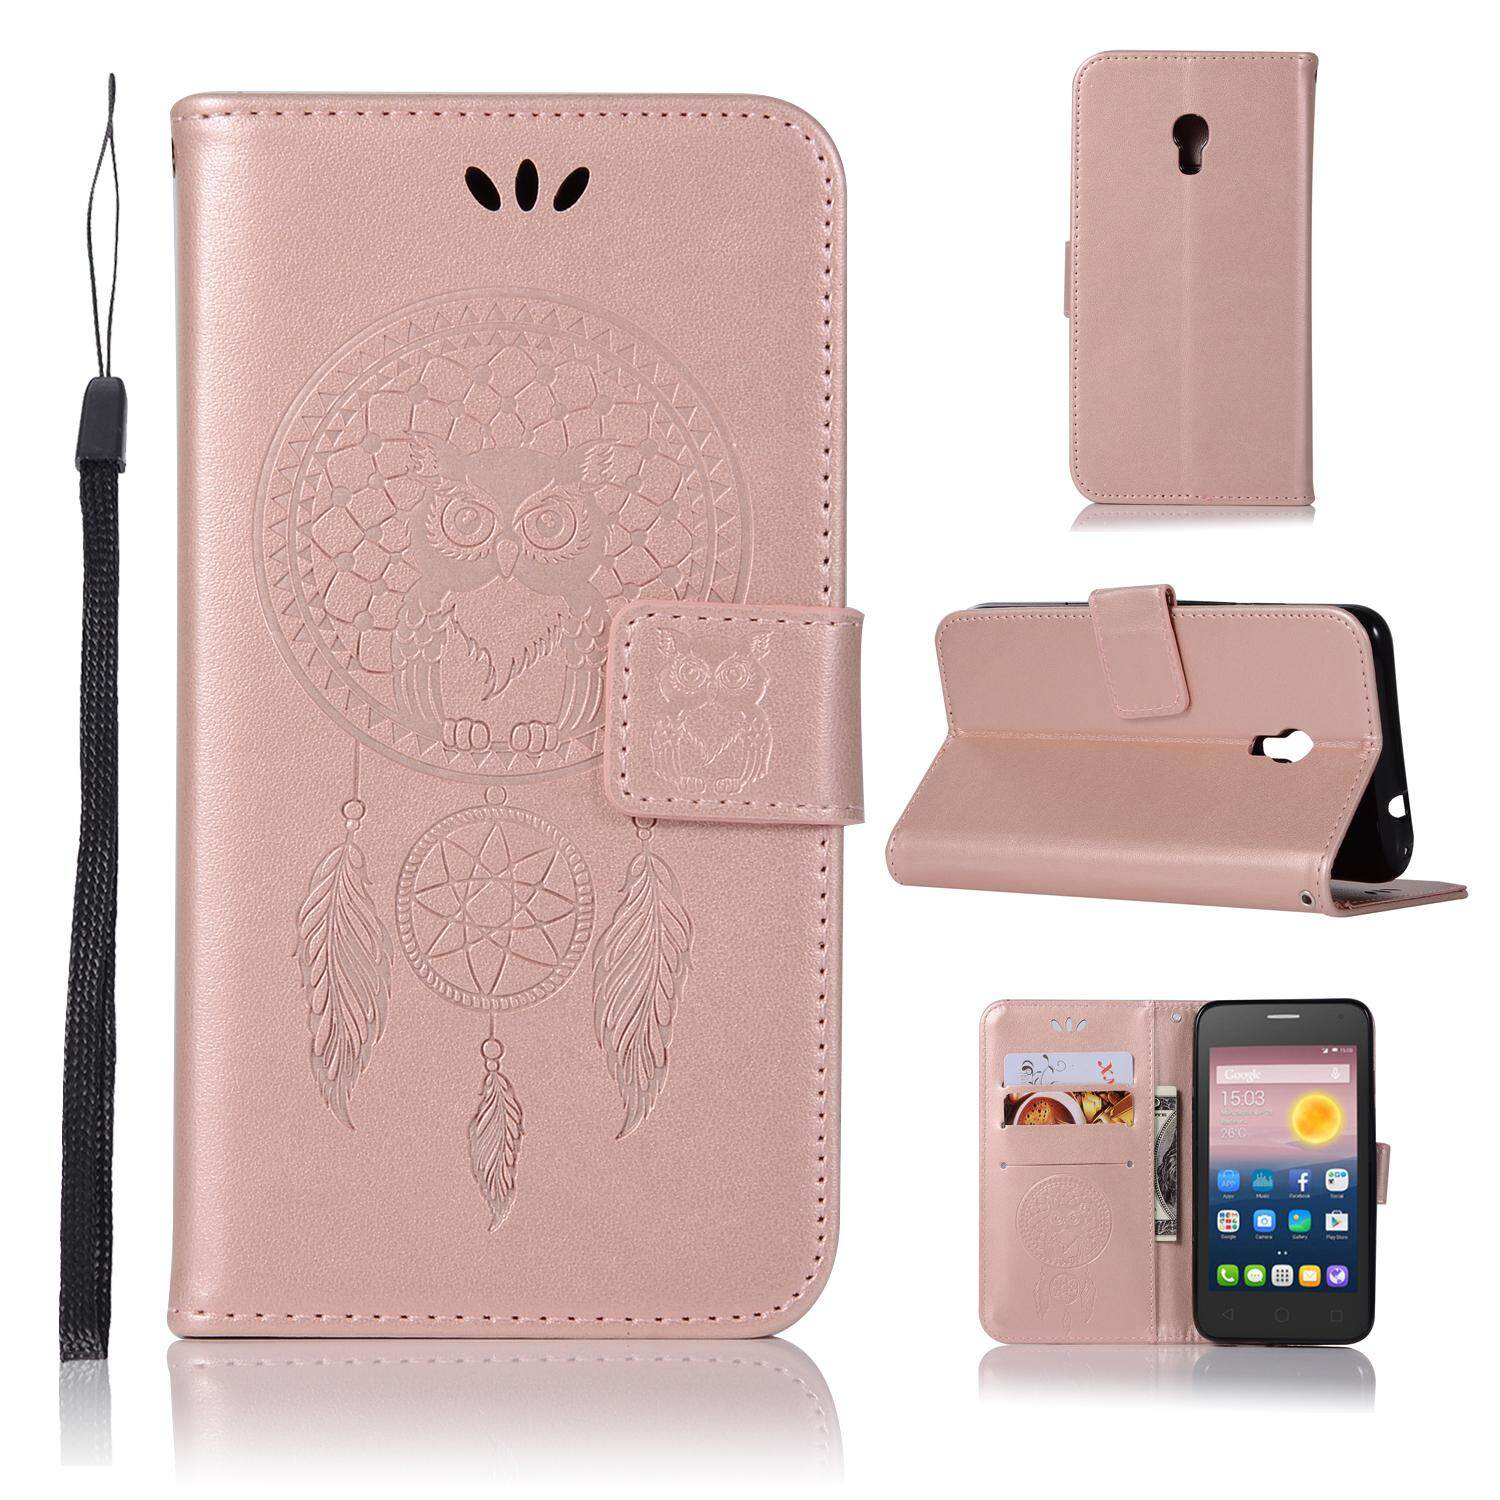 Luxury For Alcatel One Touch Pixi 4 (5.0 Inch) Casing , 3d Owl Embossing Leather Folio Flip Case Cover By Life Goes On.